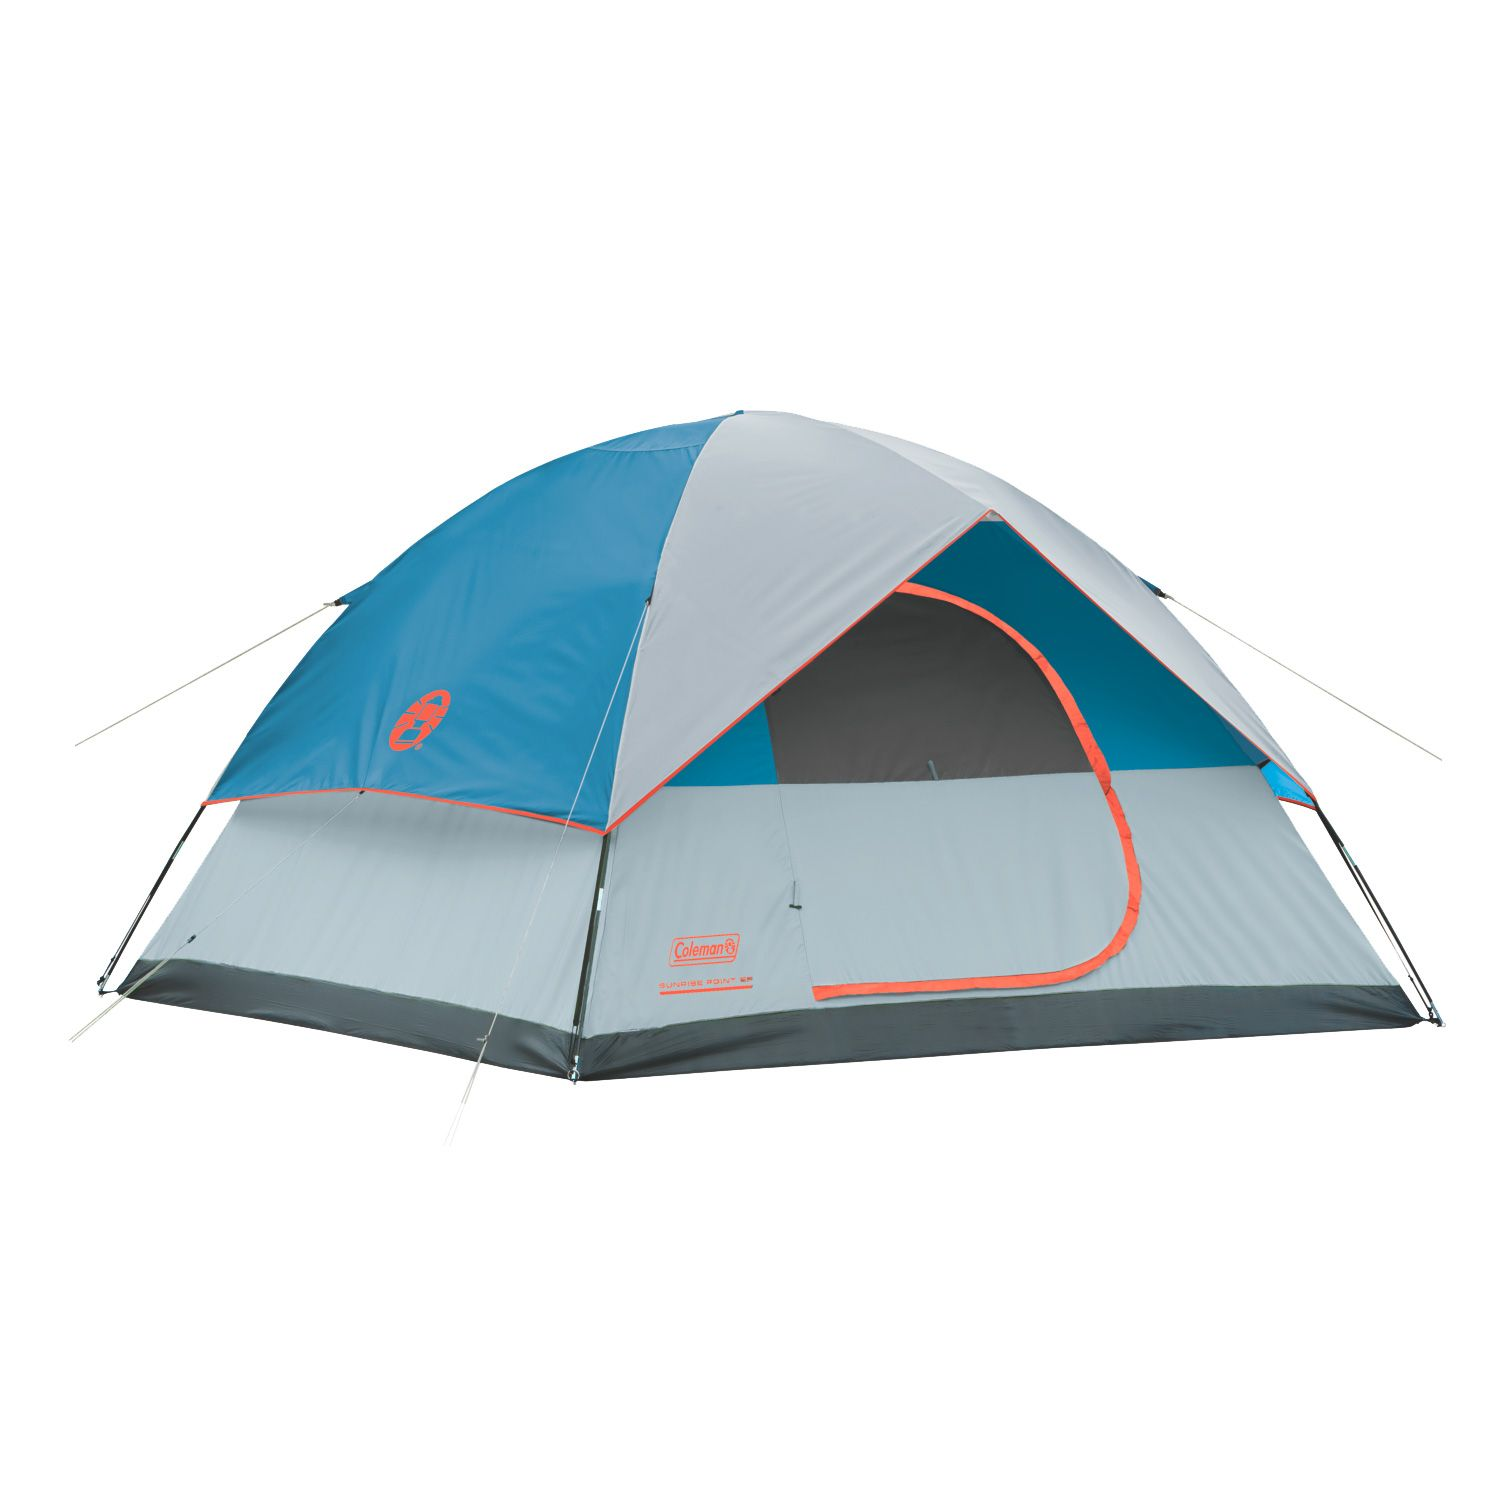 53ea18de9a6 Coleman Arch Rock 10  x 8  Dome Tent   Give the Gift of Adventure ...